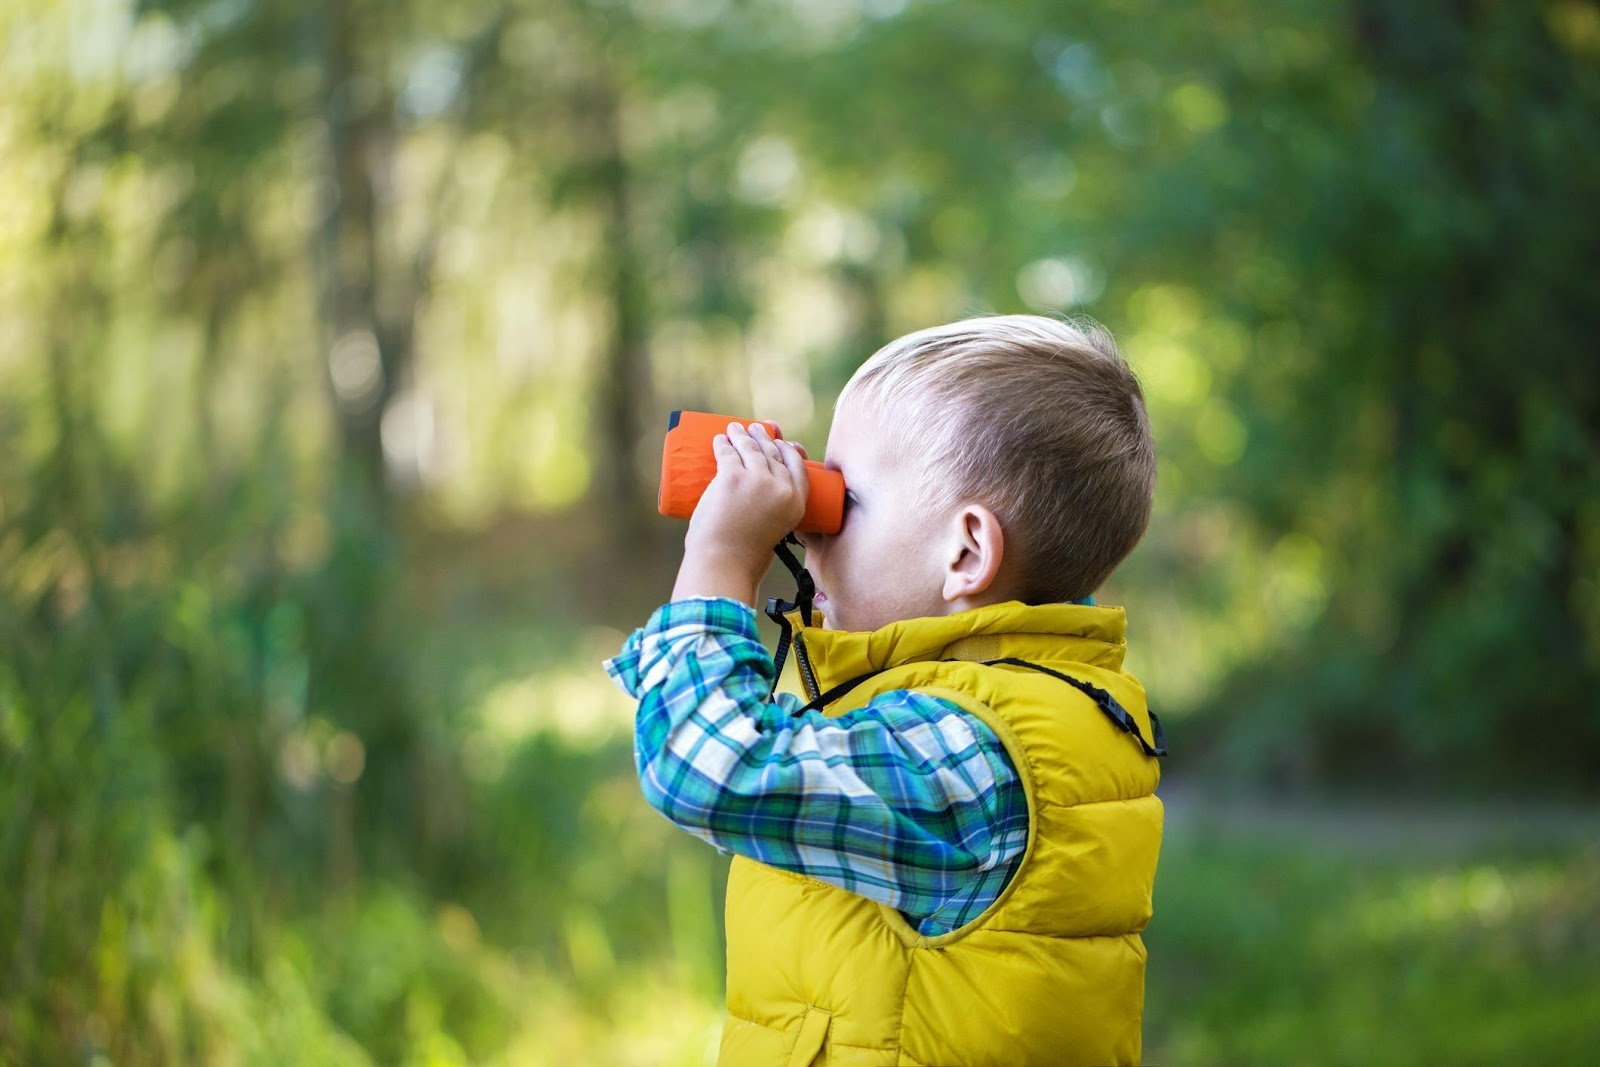 Little boy wearing a yellow gilet holding up binoculars.